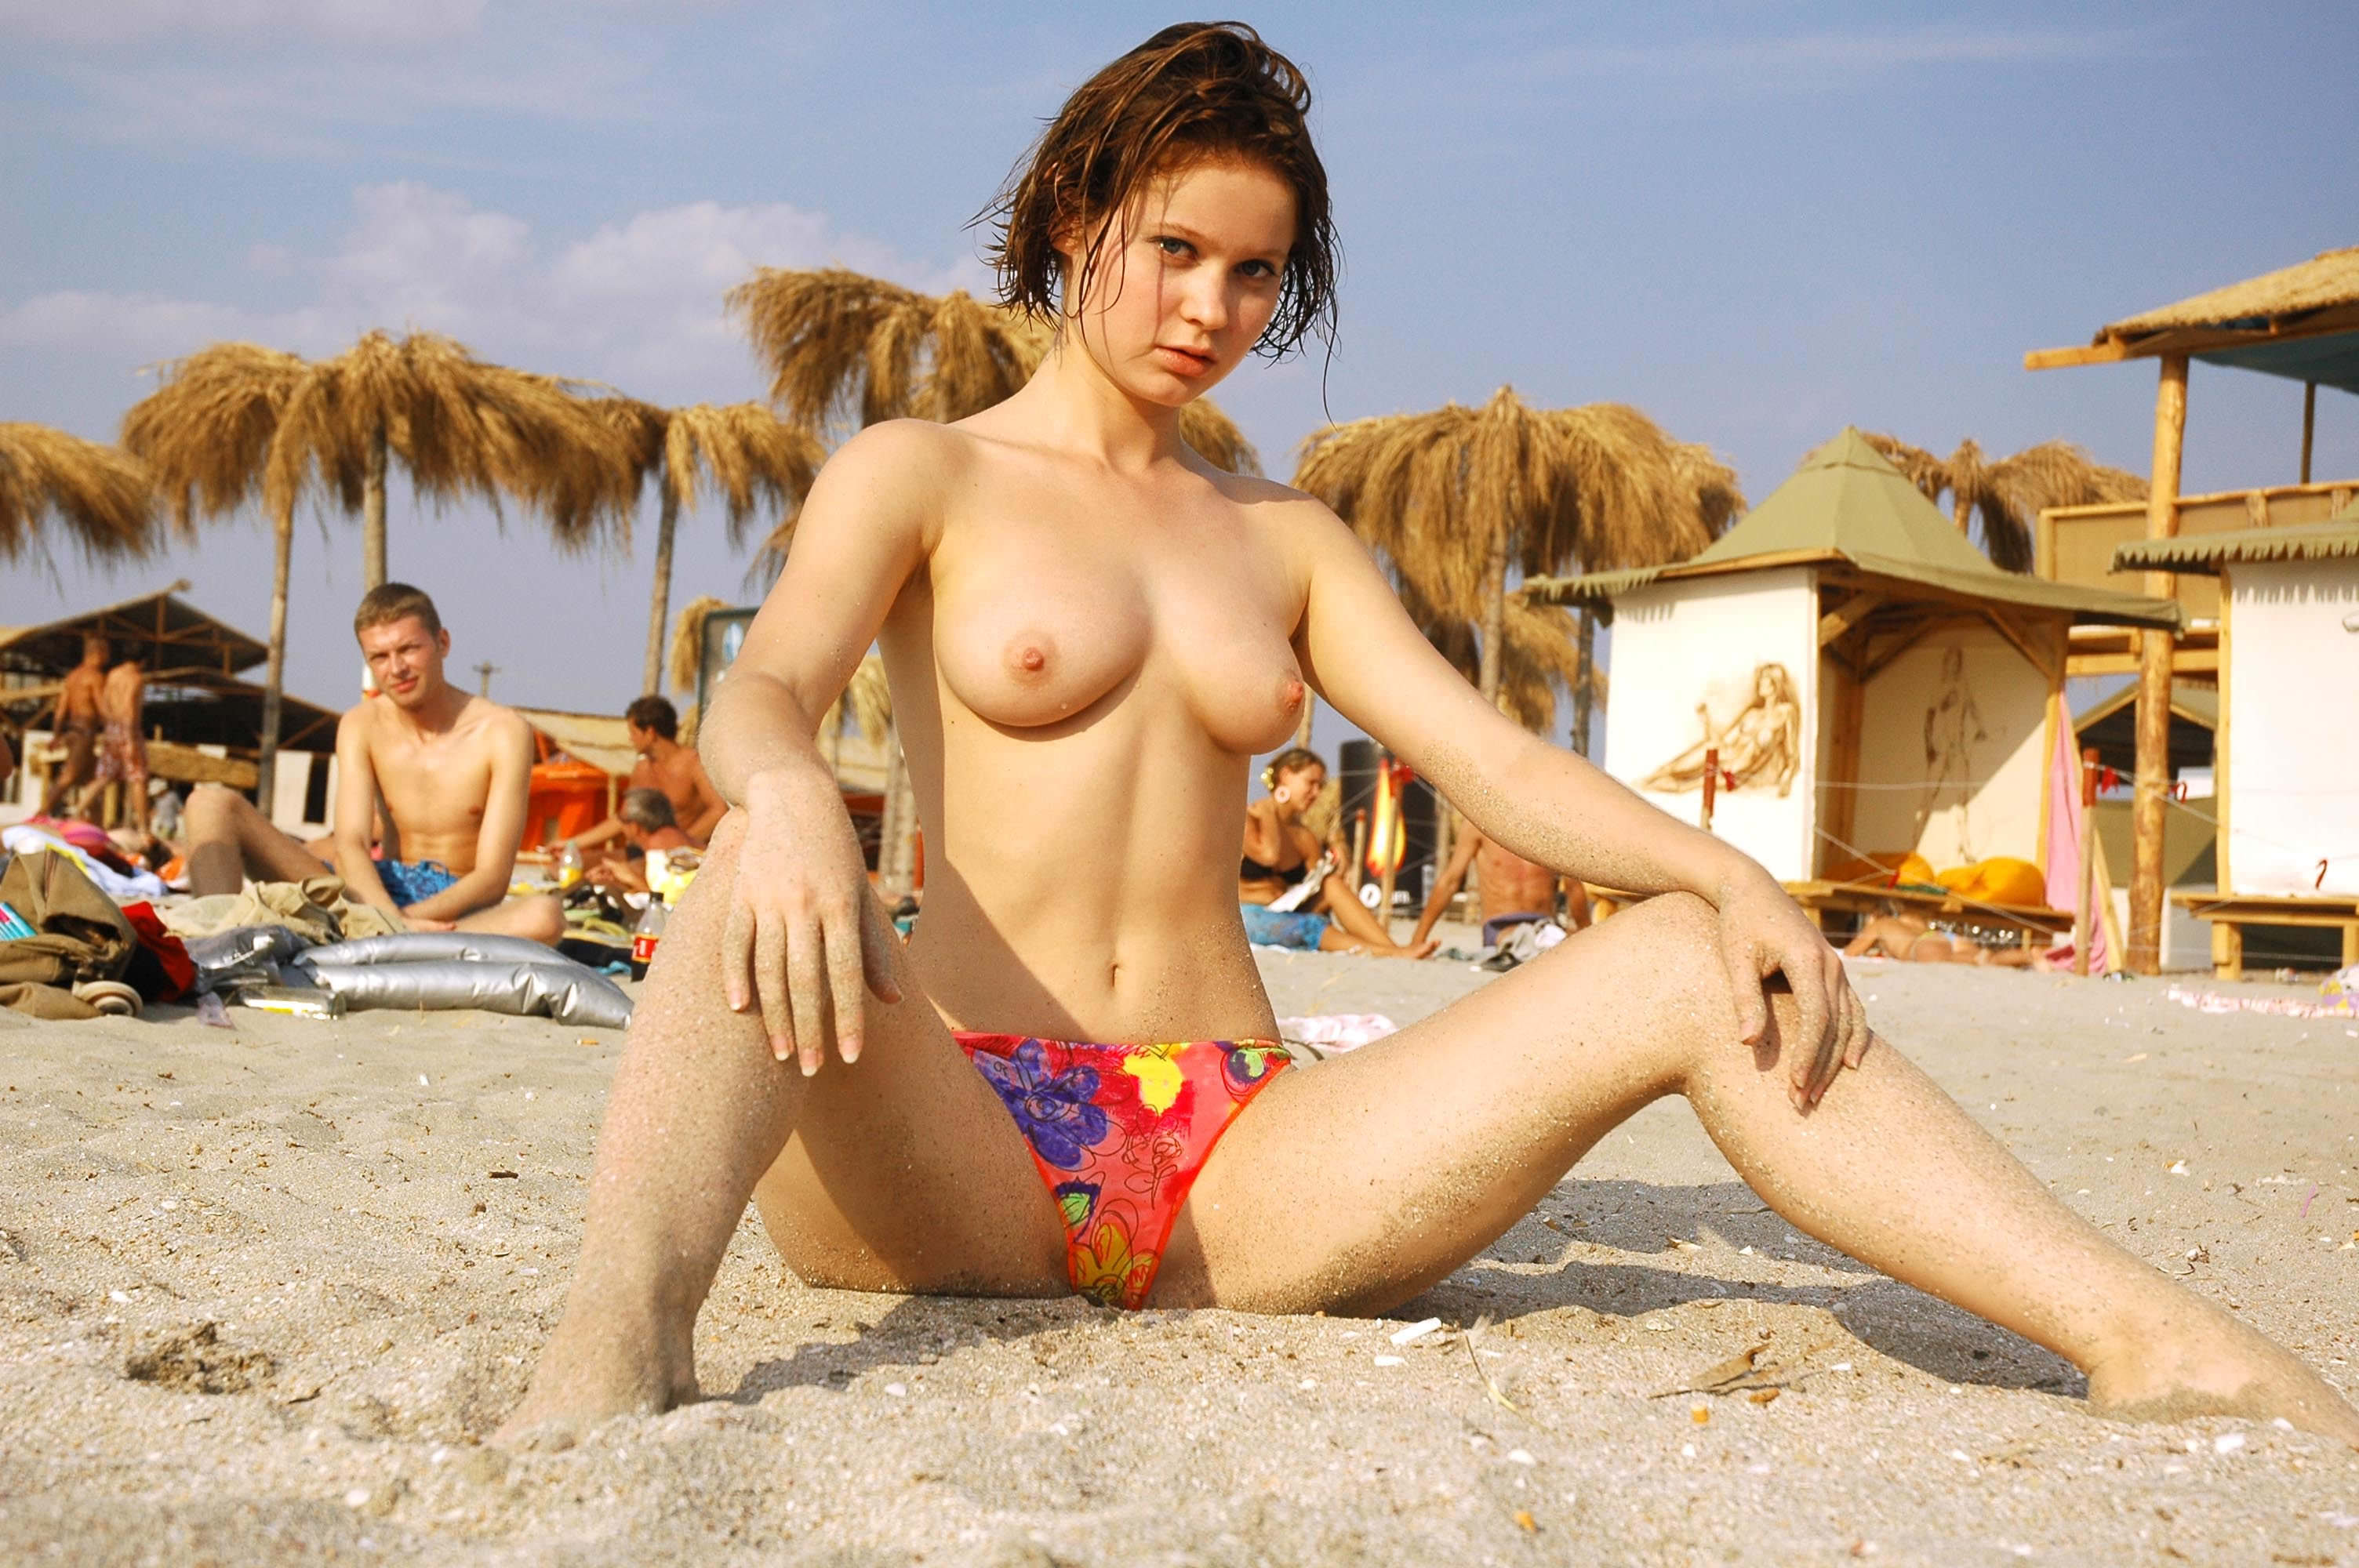 Famous Nude Beach Stock Photos And Images